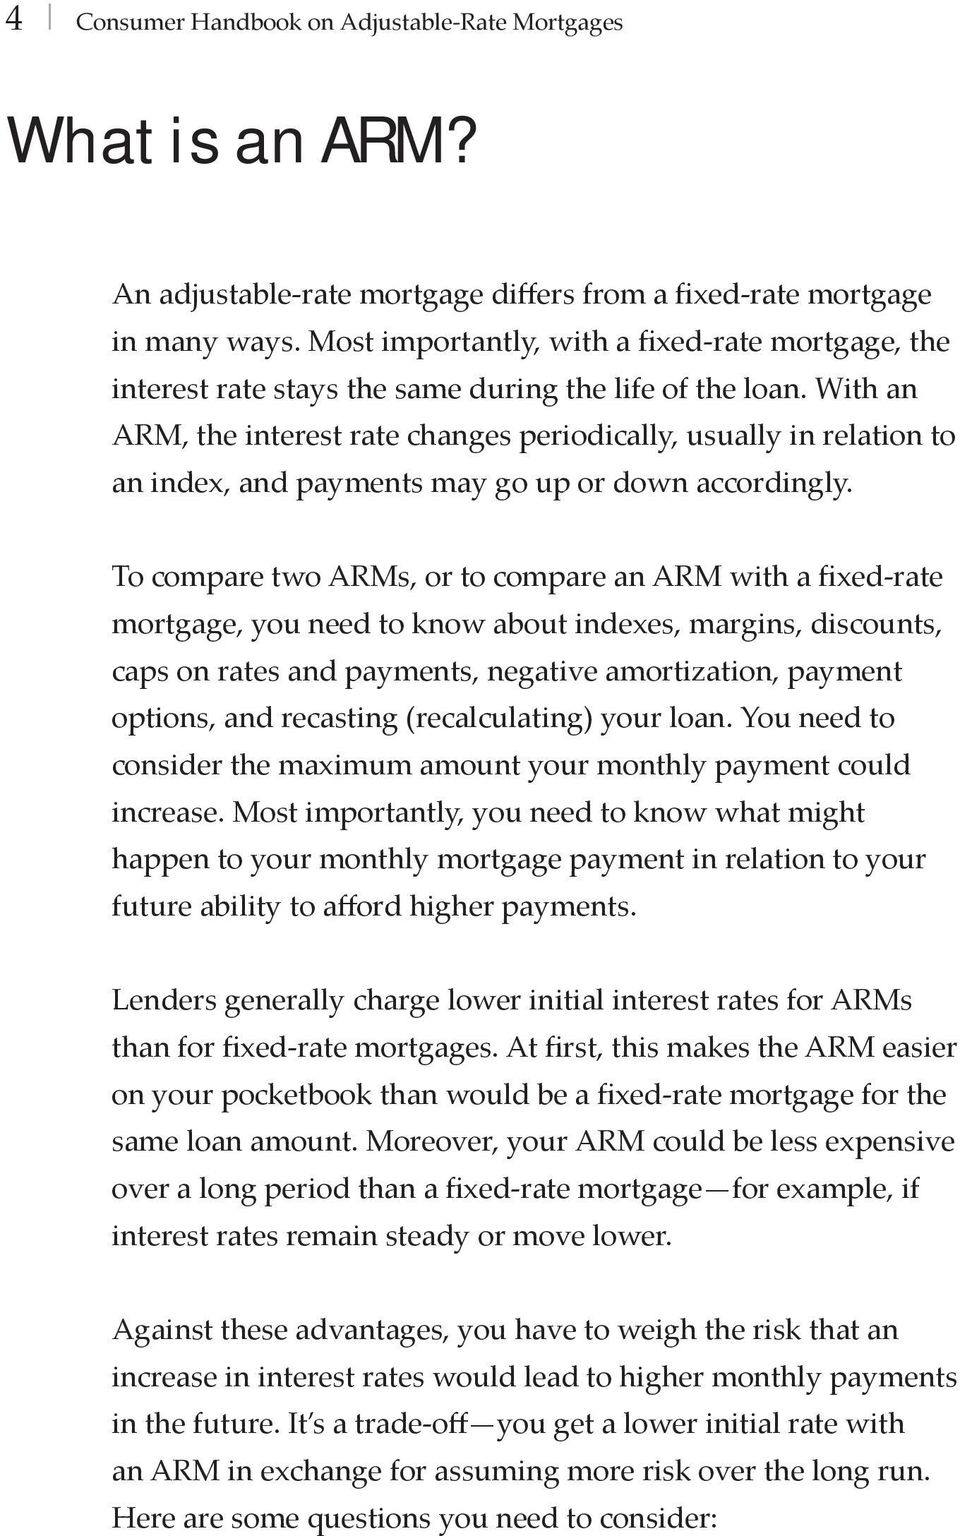 With an ARM, the interest rate changes periodically, usually in relation to an index, and payments may go up or down accordingly.